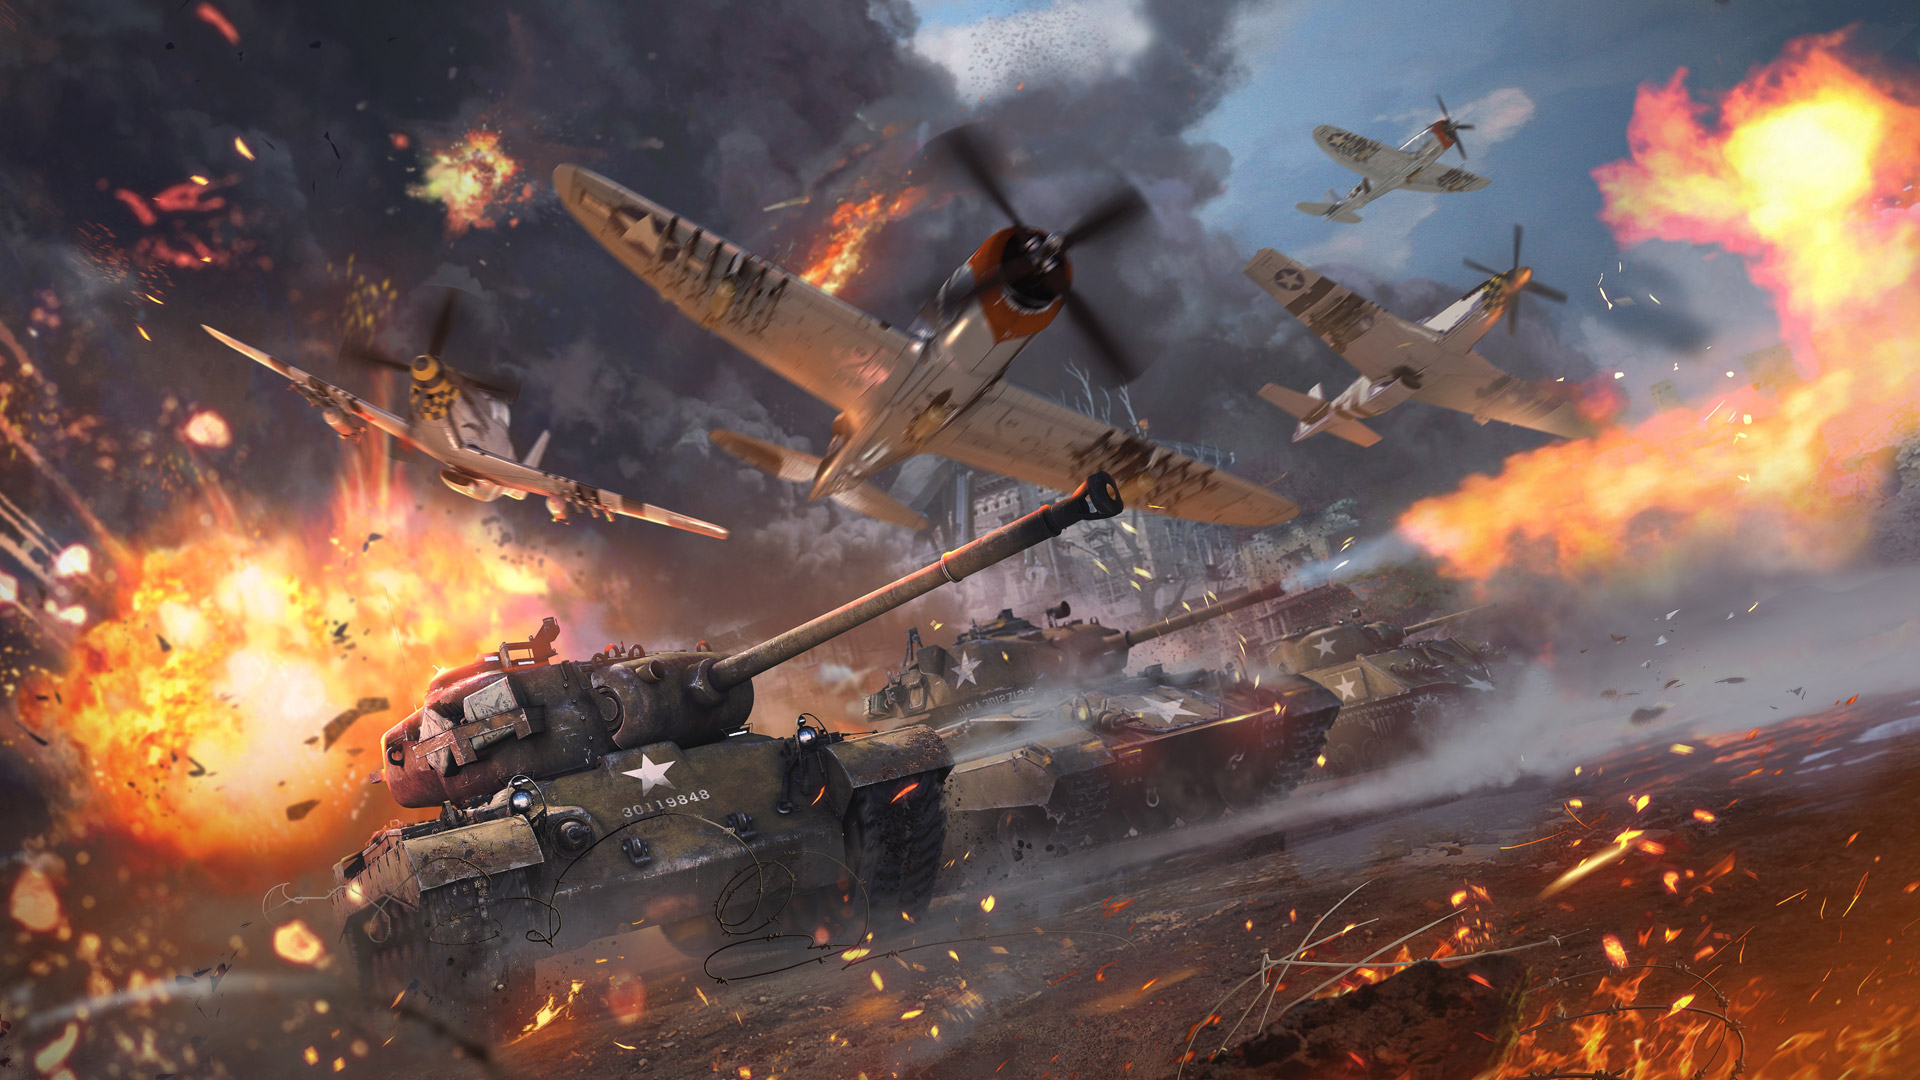 War Thunder Wallpaper in 1920x1080